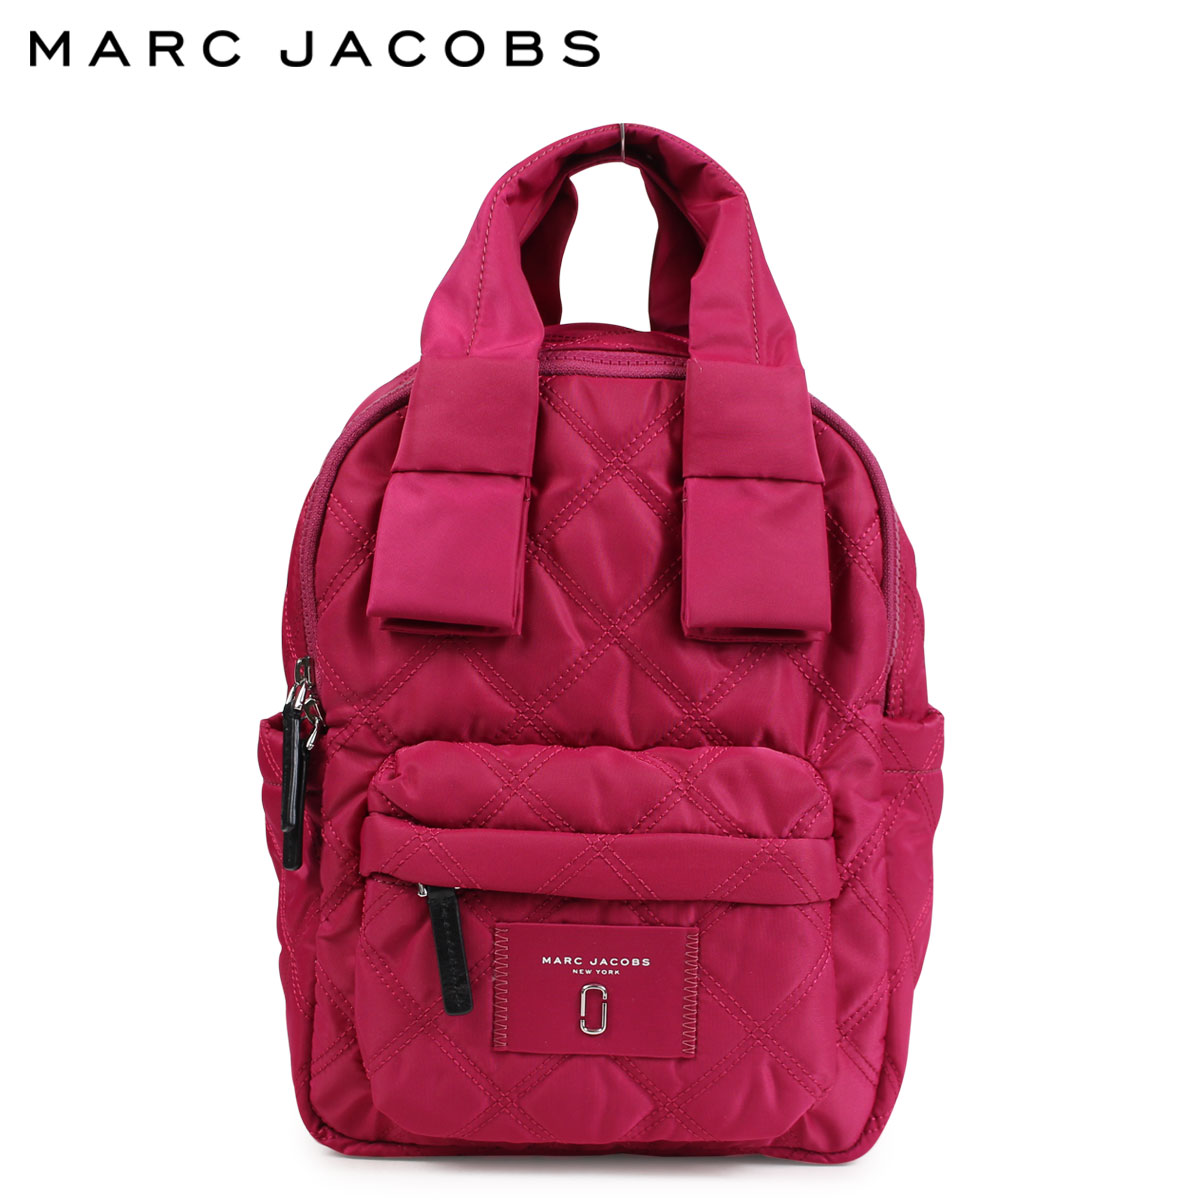 MARC JACOBS マークジェイコブス リュック バッグ バックパック レディース QUILTED NYLON SMALL BACKPACK ラズベリー M0011201